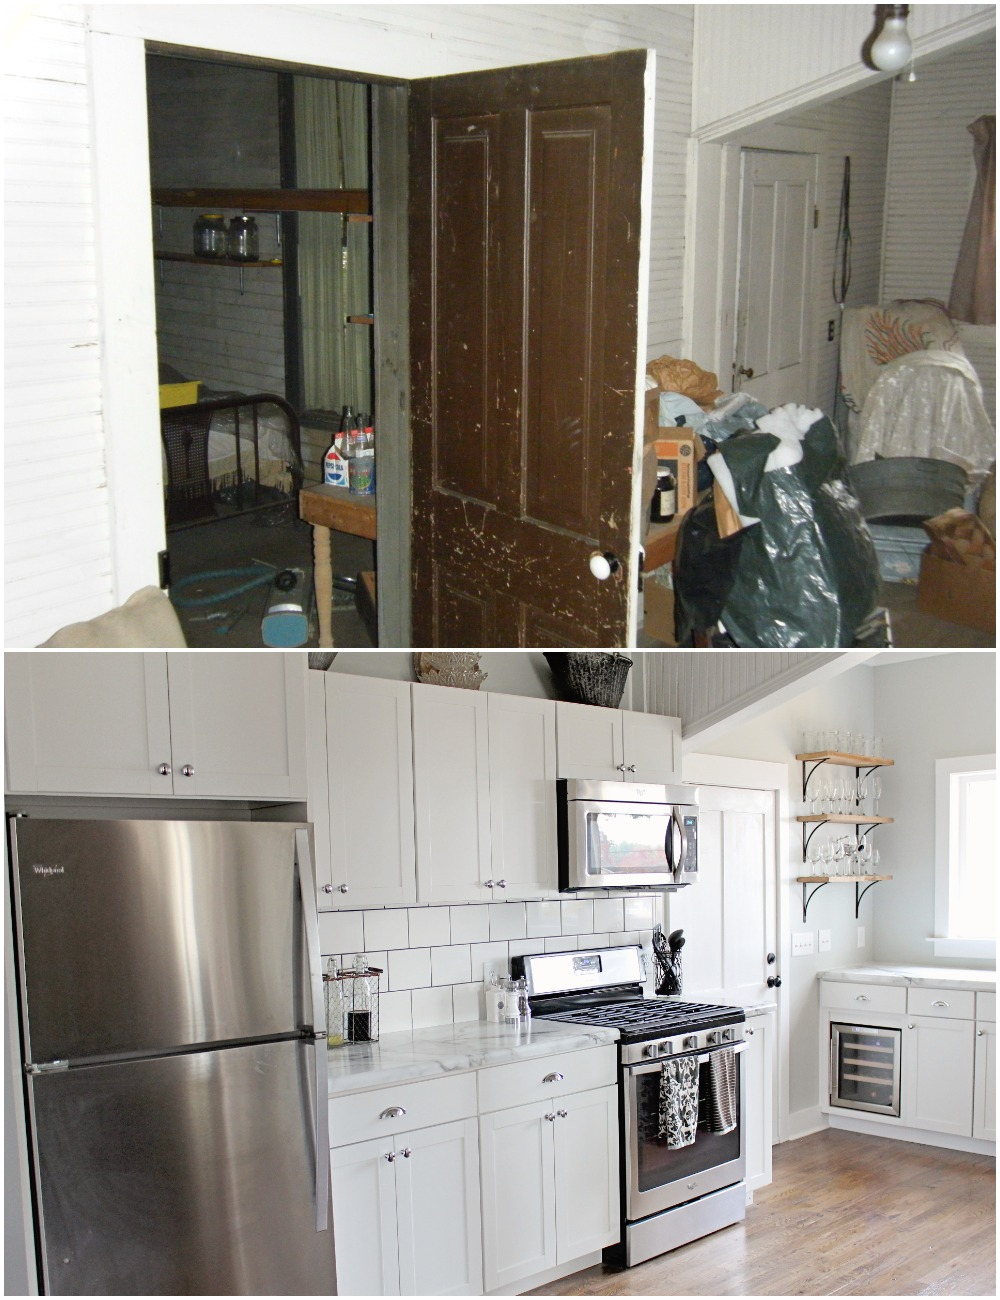 Elizabeth Burns Design  Budget-Friendly Fixer Upper Farmhouse Before and After House Flip - DIY Kitchen with Formica Marble Counter White Shaker Cabinets Barn Door - Sherwin Williams Silver Strand (2).jpg